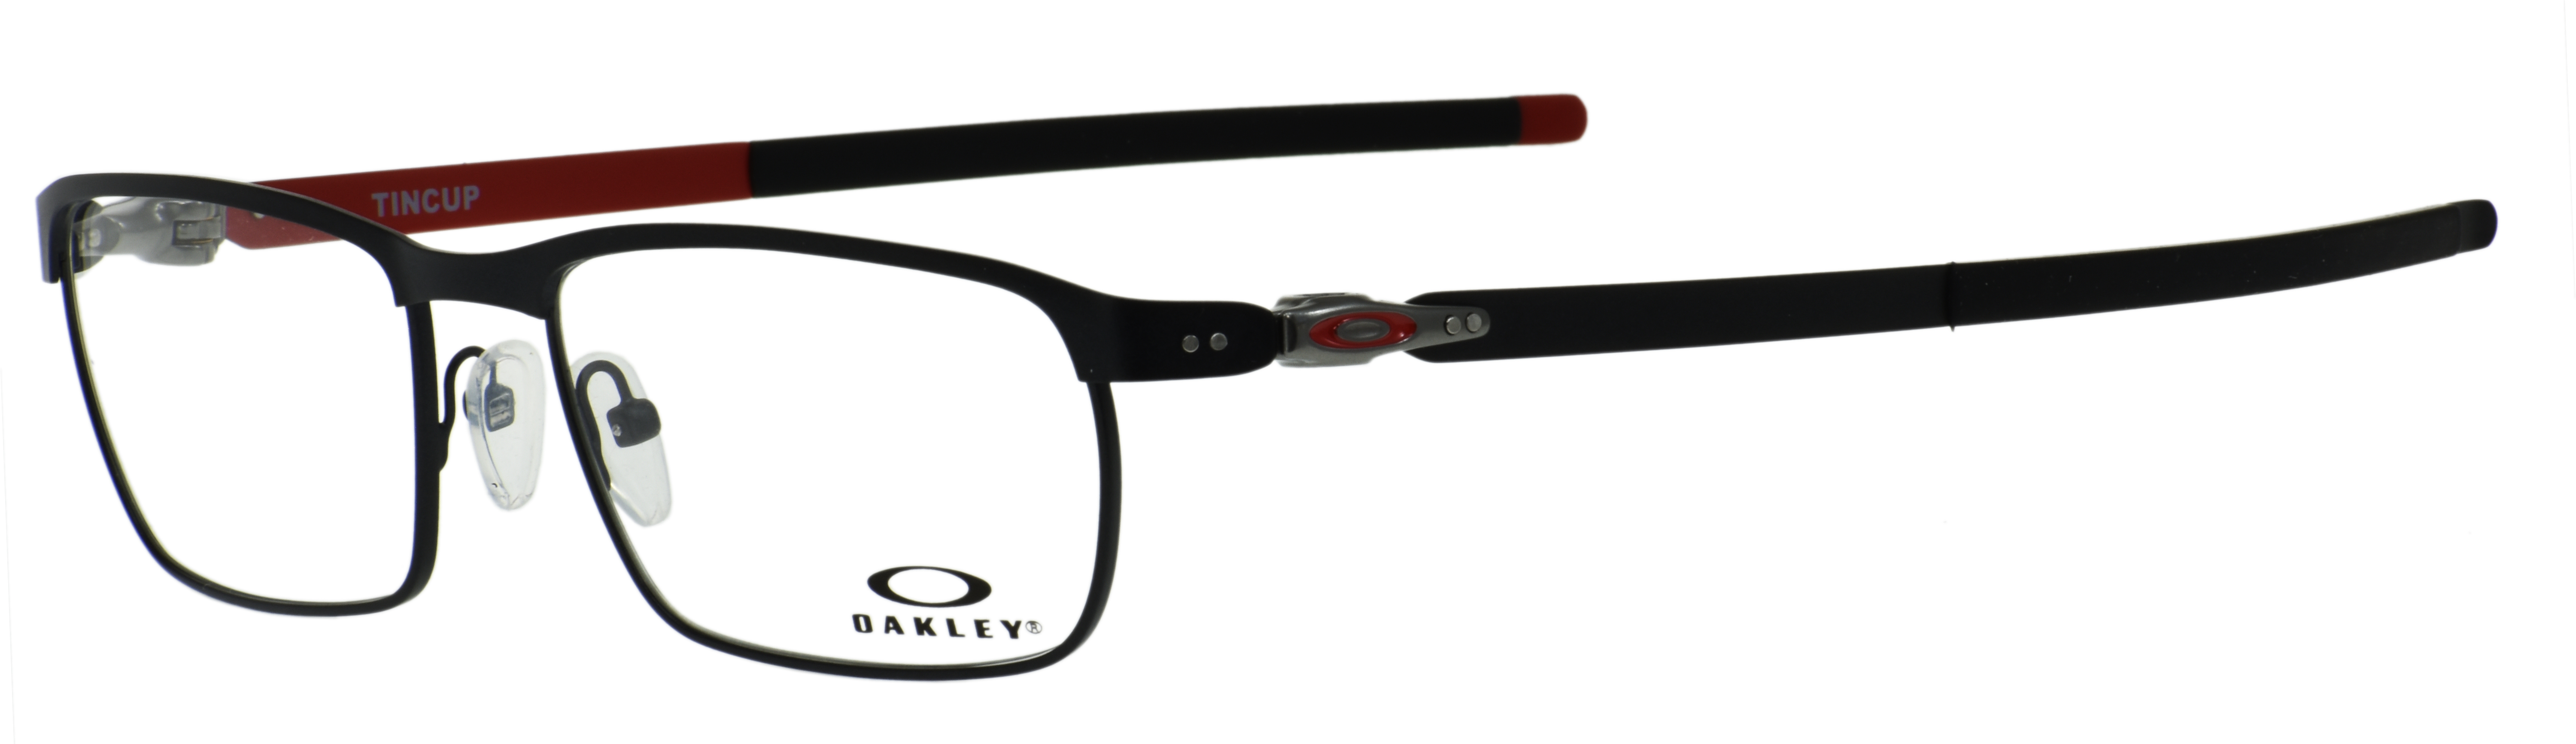 OAKLEY TINCUP 1154 ¥29,600 02